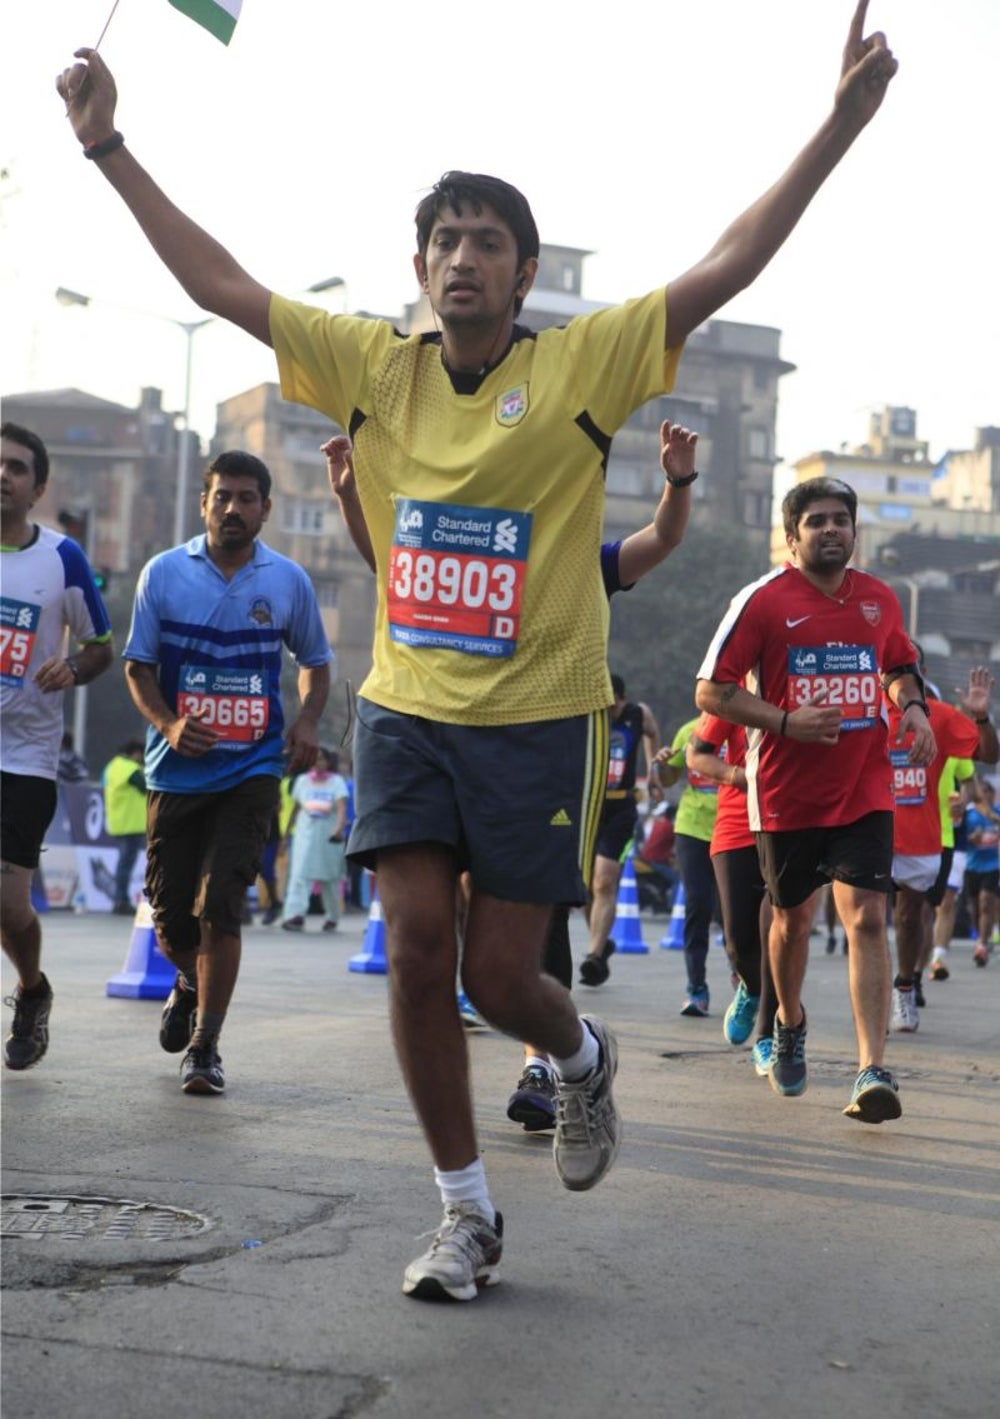 MARATHON RUNNING IS A WAY OF LIVING LIFE